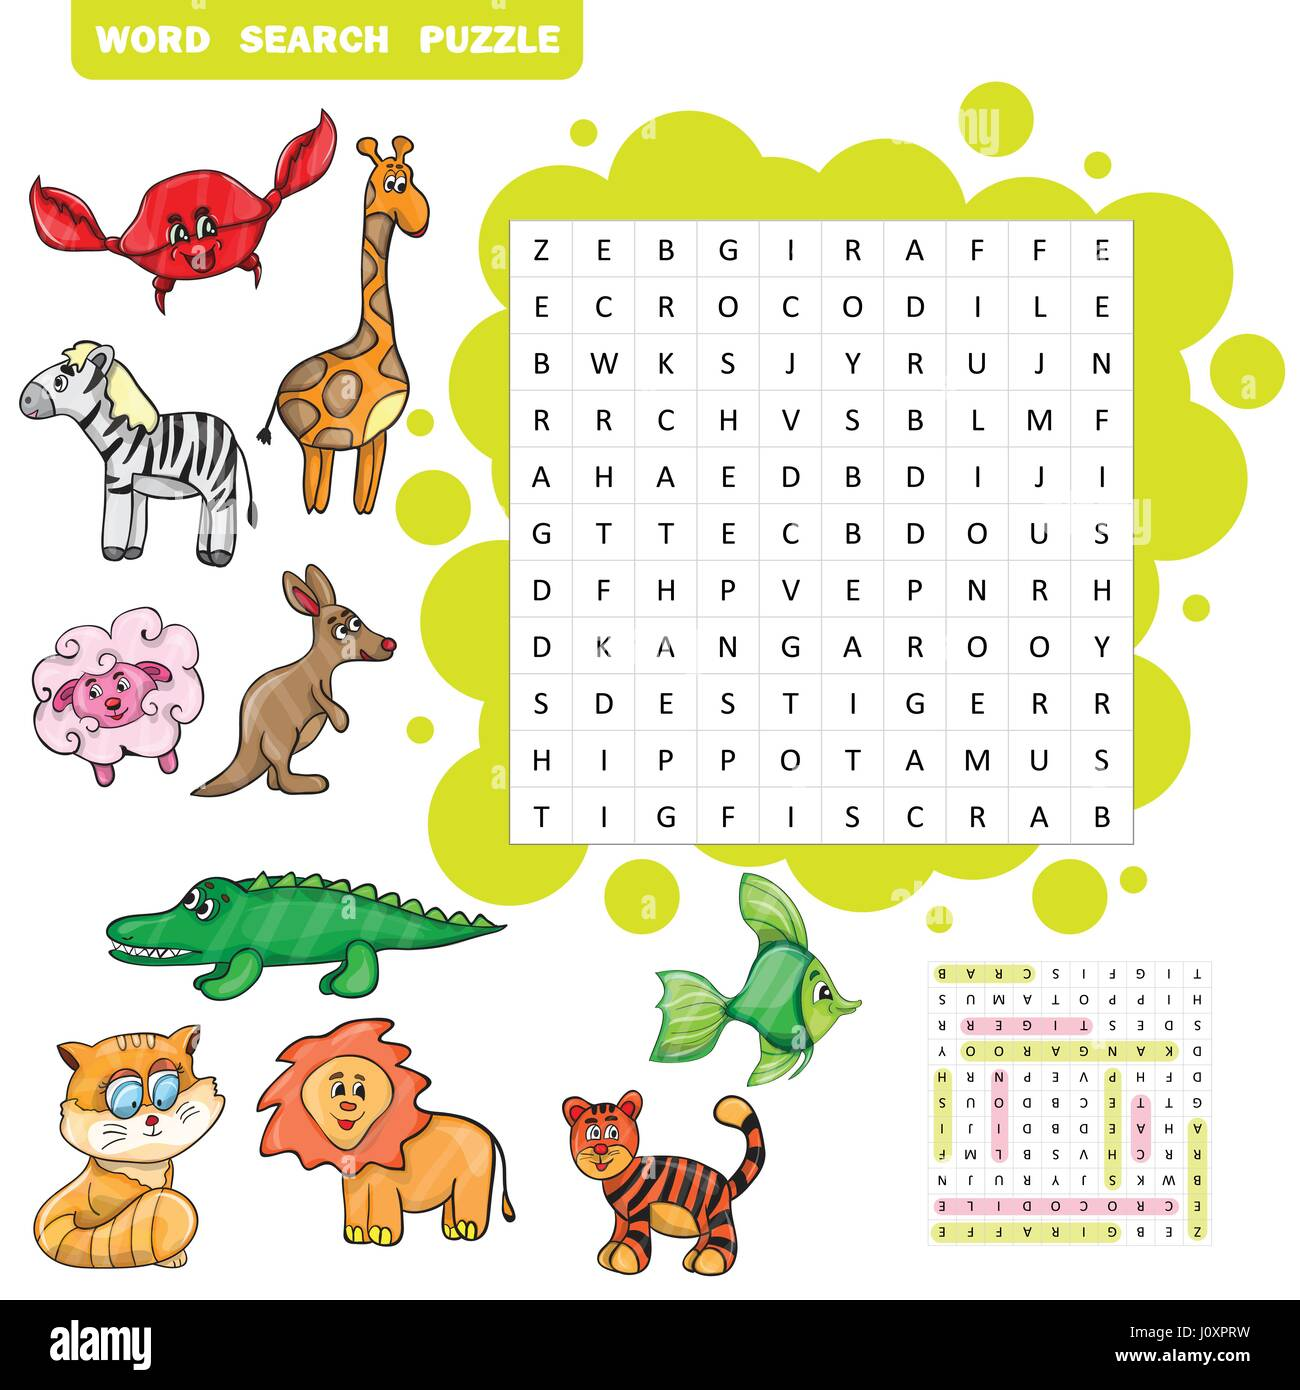 Animal Word Search Puzzle - Printable Worksheet - Free ...